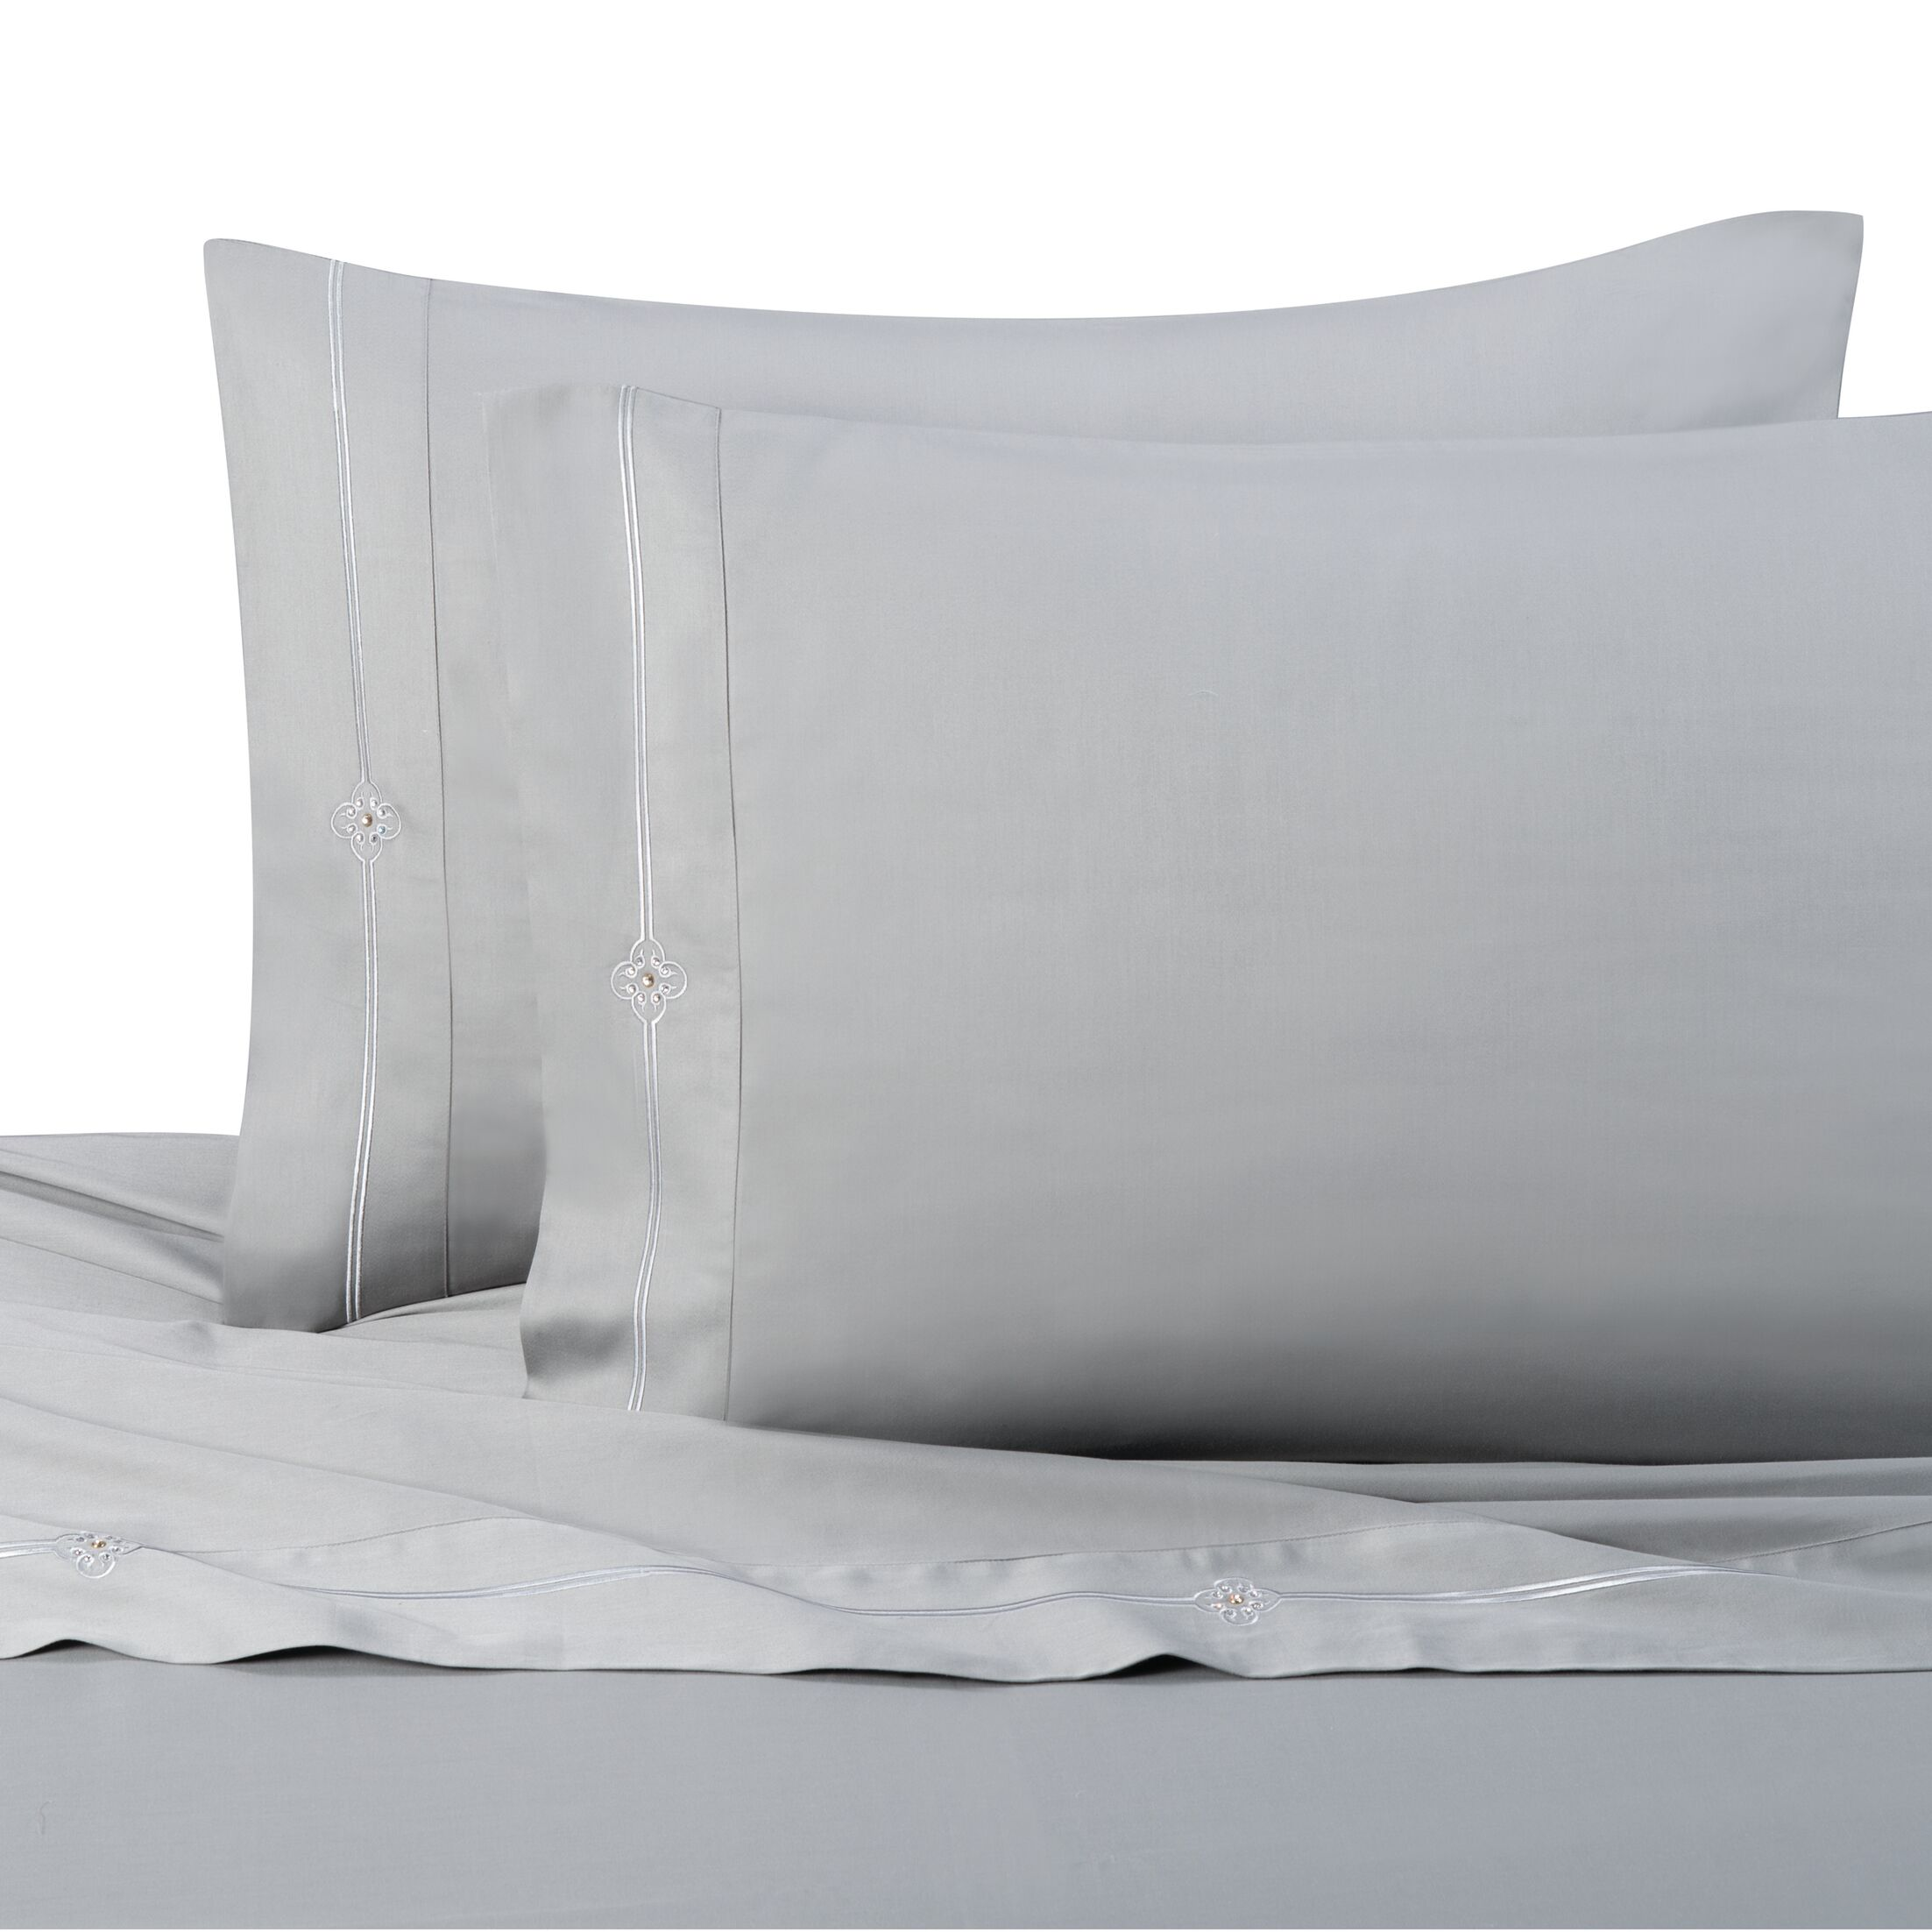 Eros Swarovski� Sheet Set Size: Full / Queen